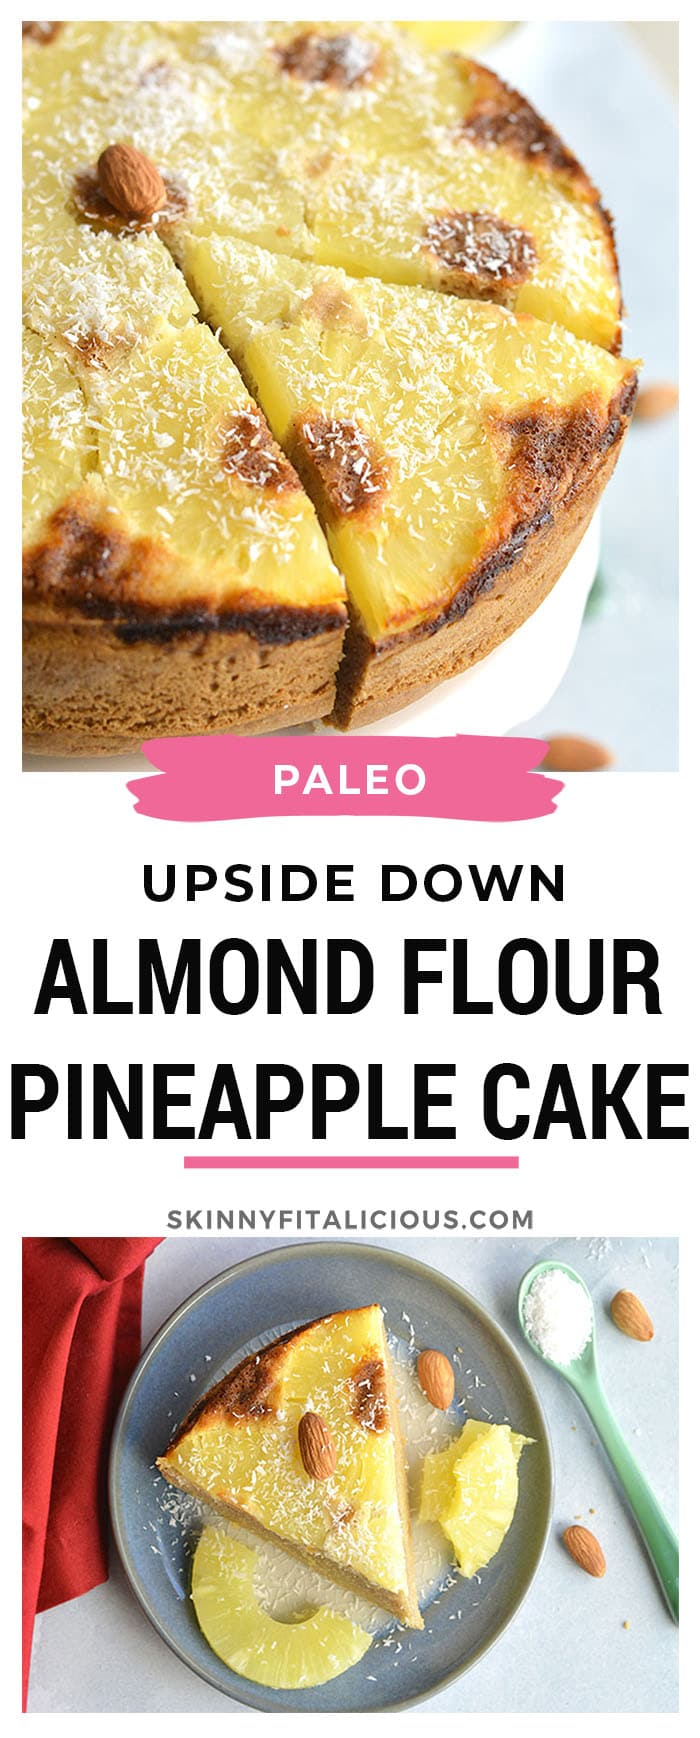 This Almond Flour Upside Down Pineapple Cake is Paleo, dairy-free and simple to make! A pineapple flavored cake that's perfect for any season. Paleo + Gluten Free